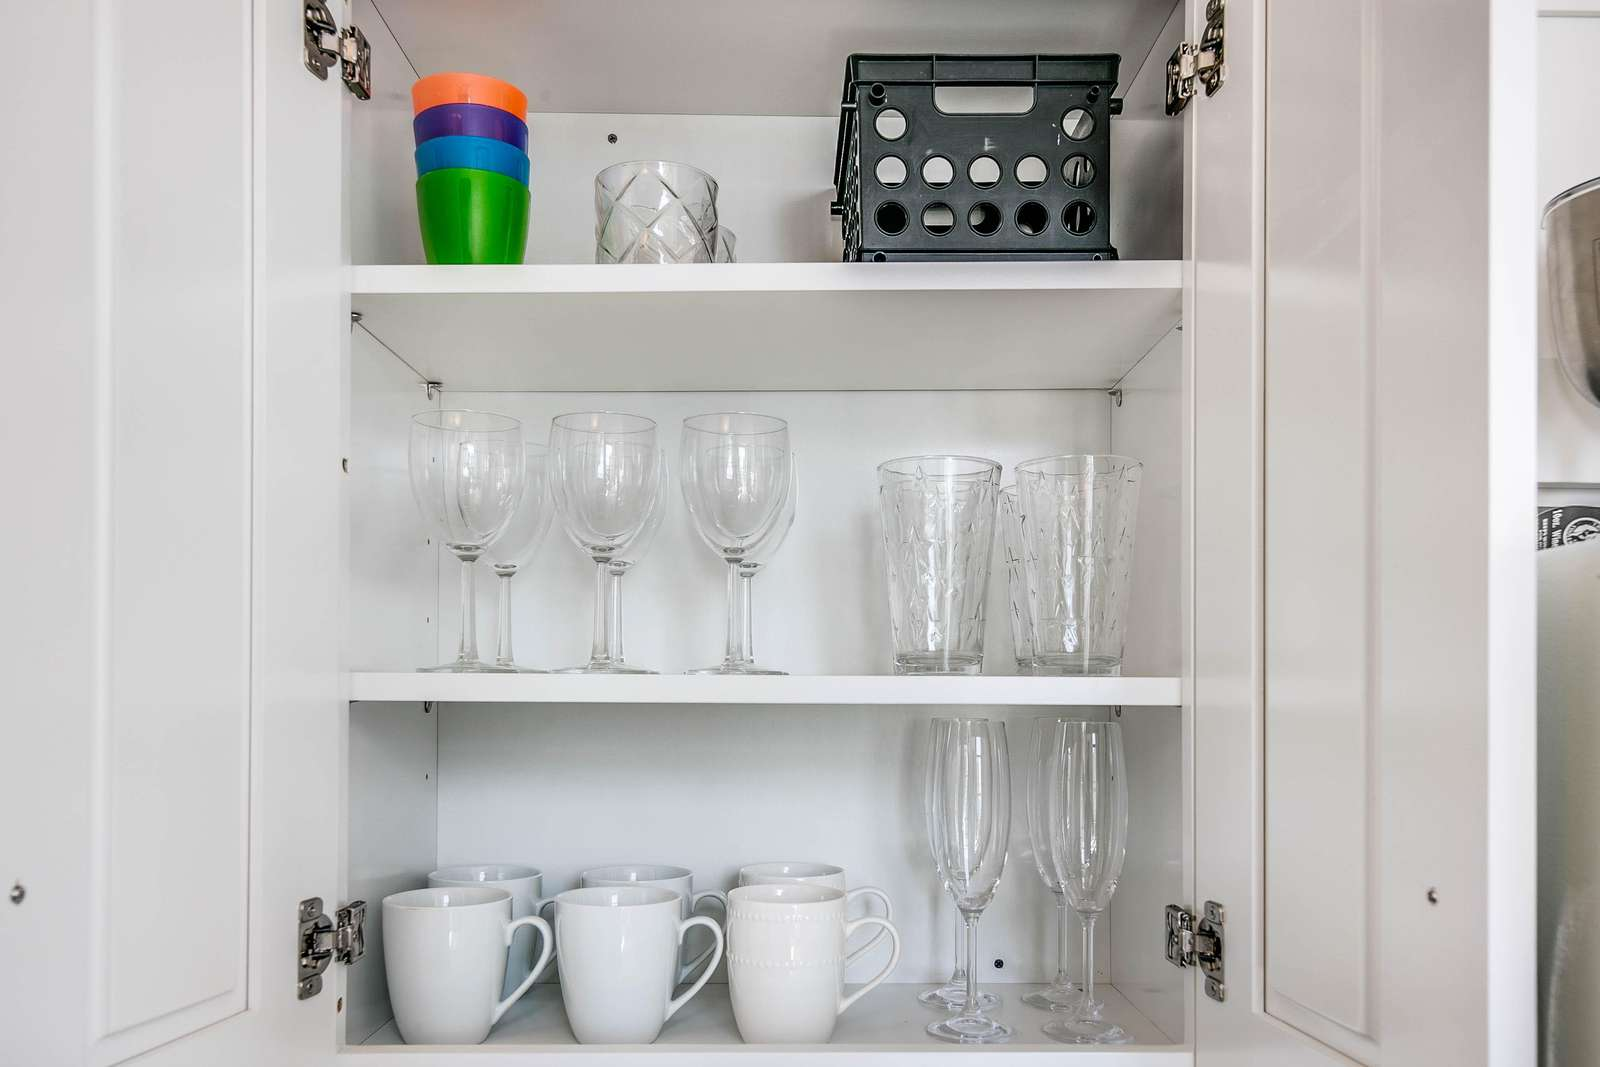 Well stocked cabinets